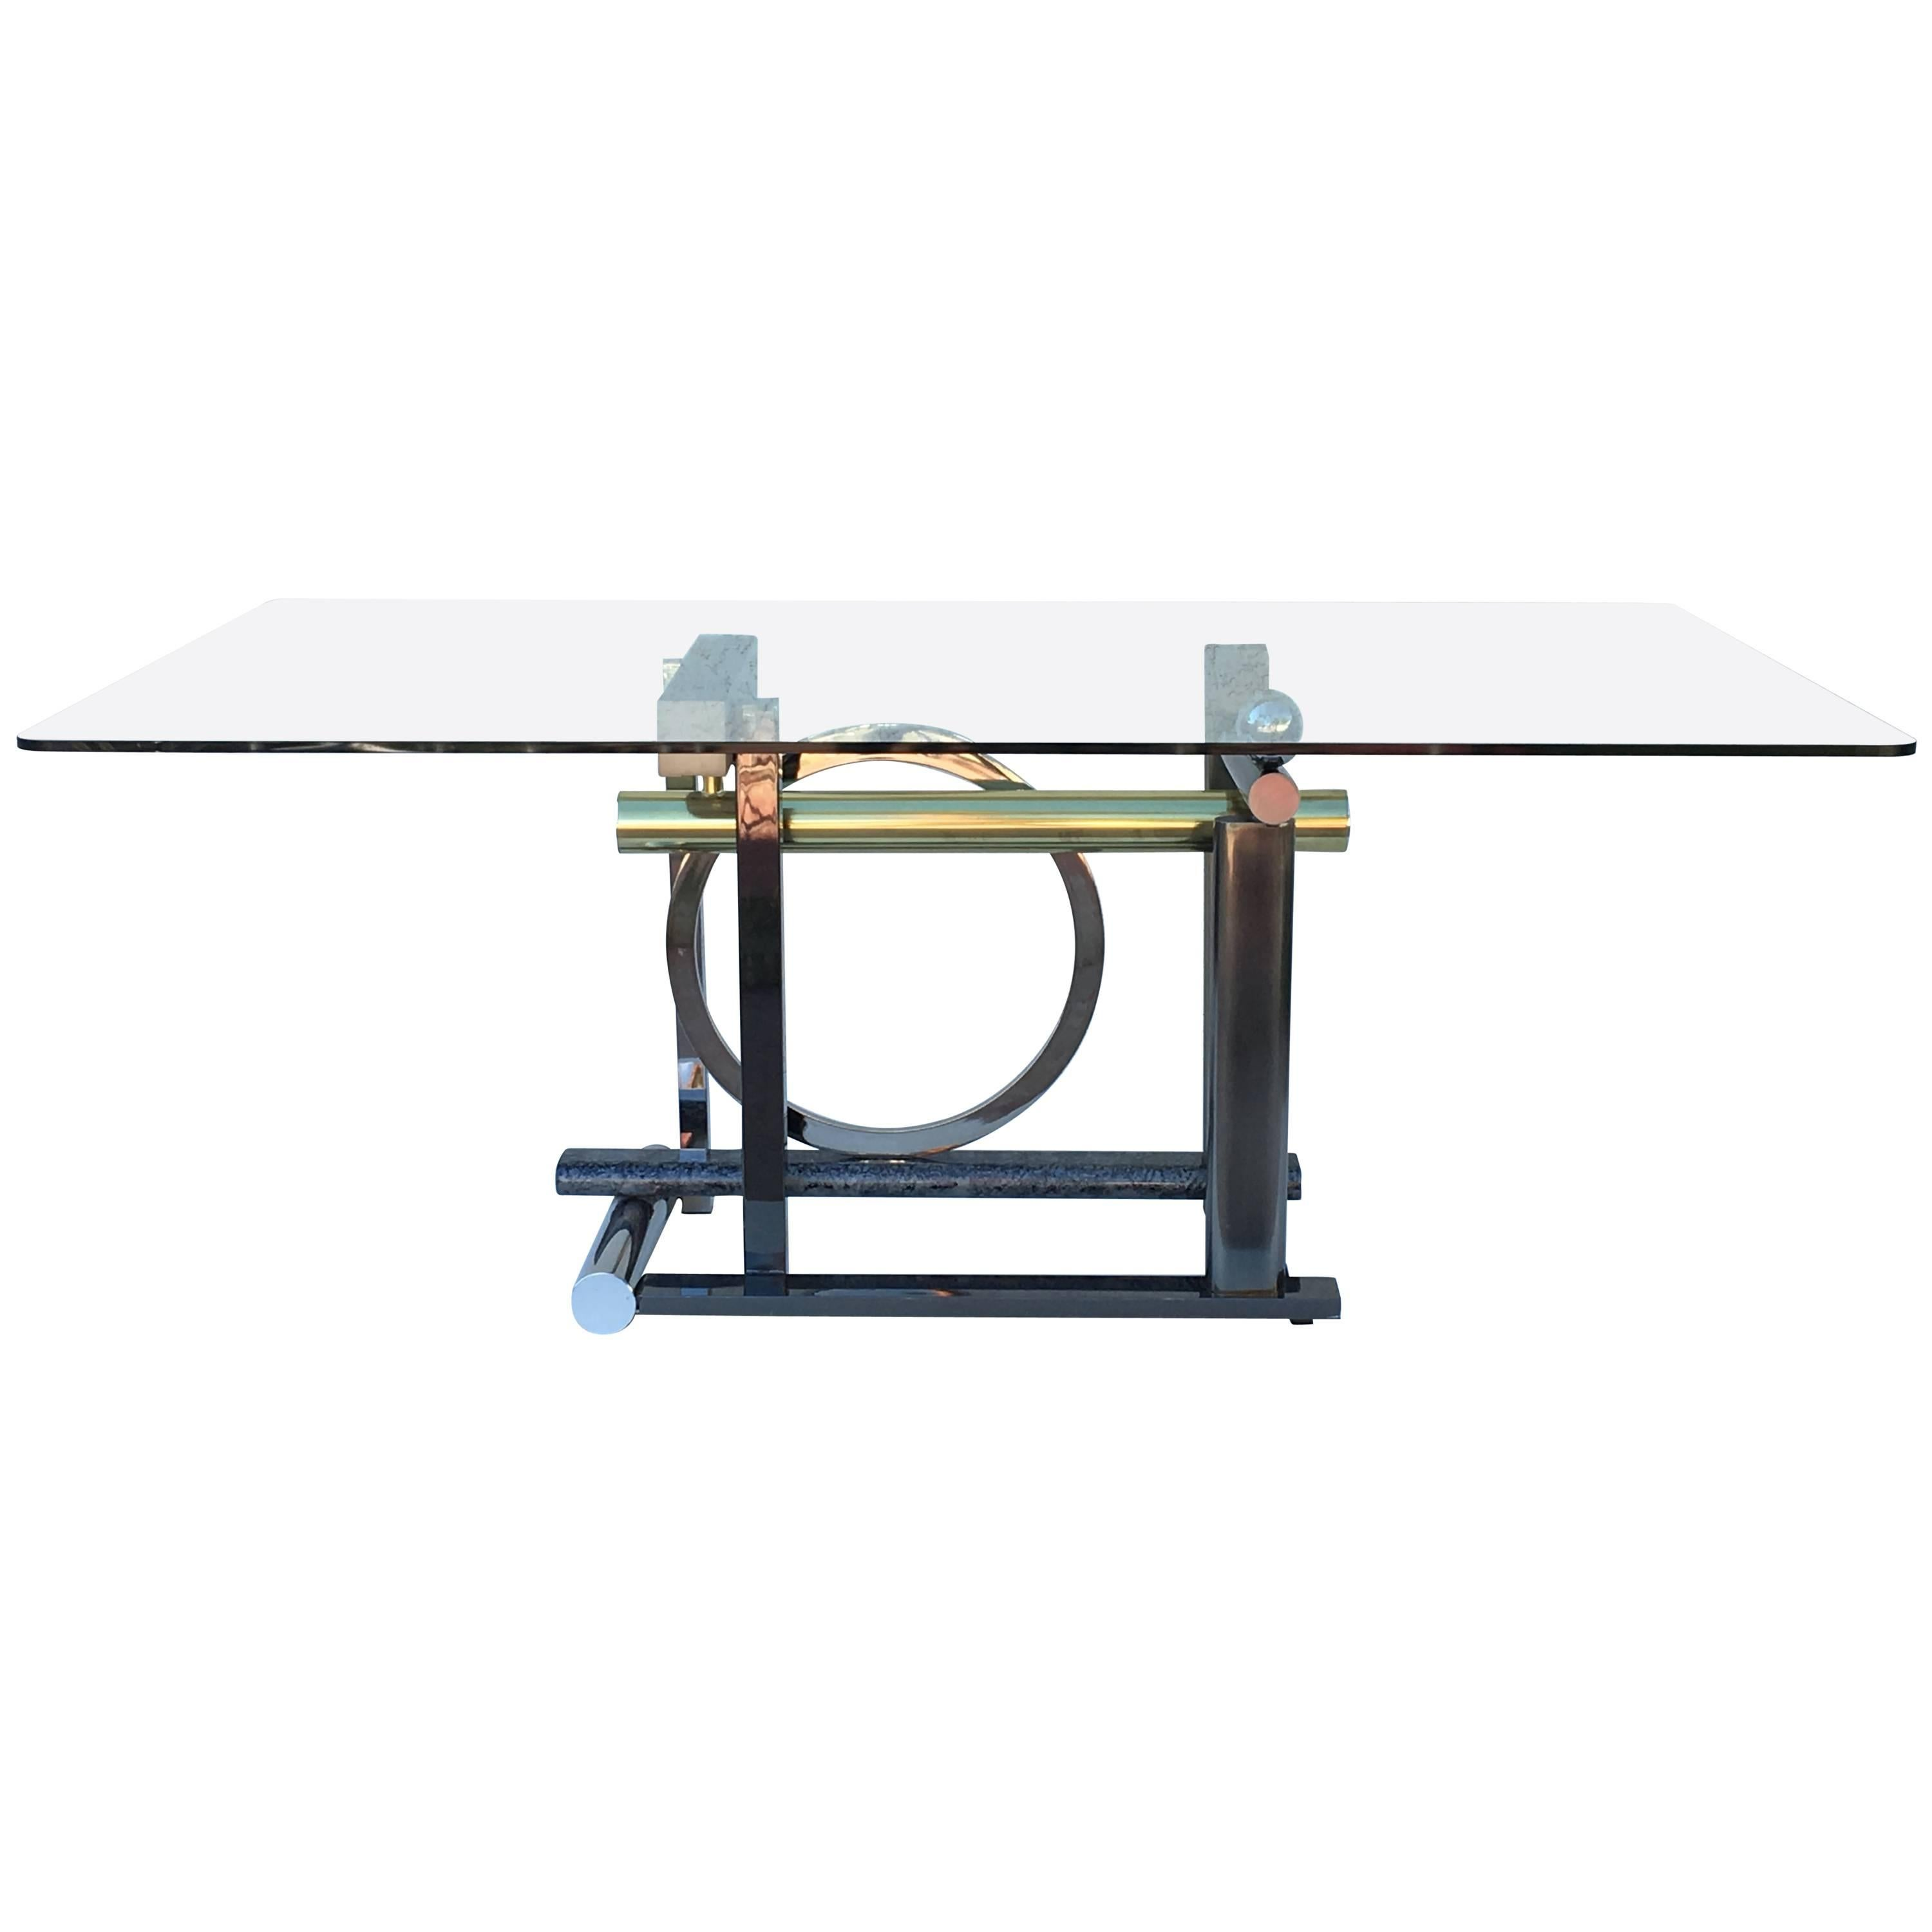 Postmodern Mix-Metals and Glass Dining Table by Kaizo Oto for DIA